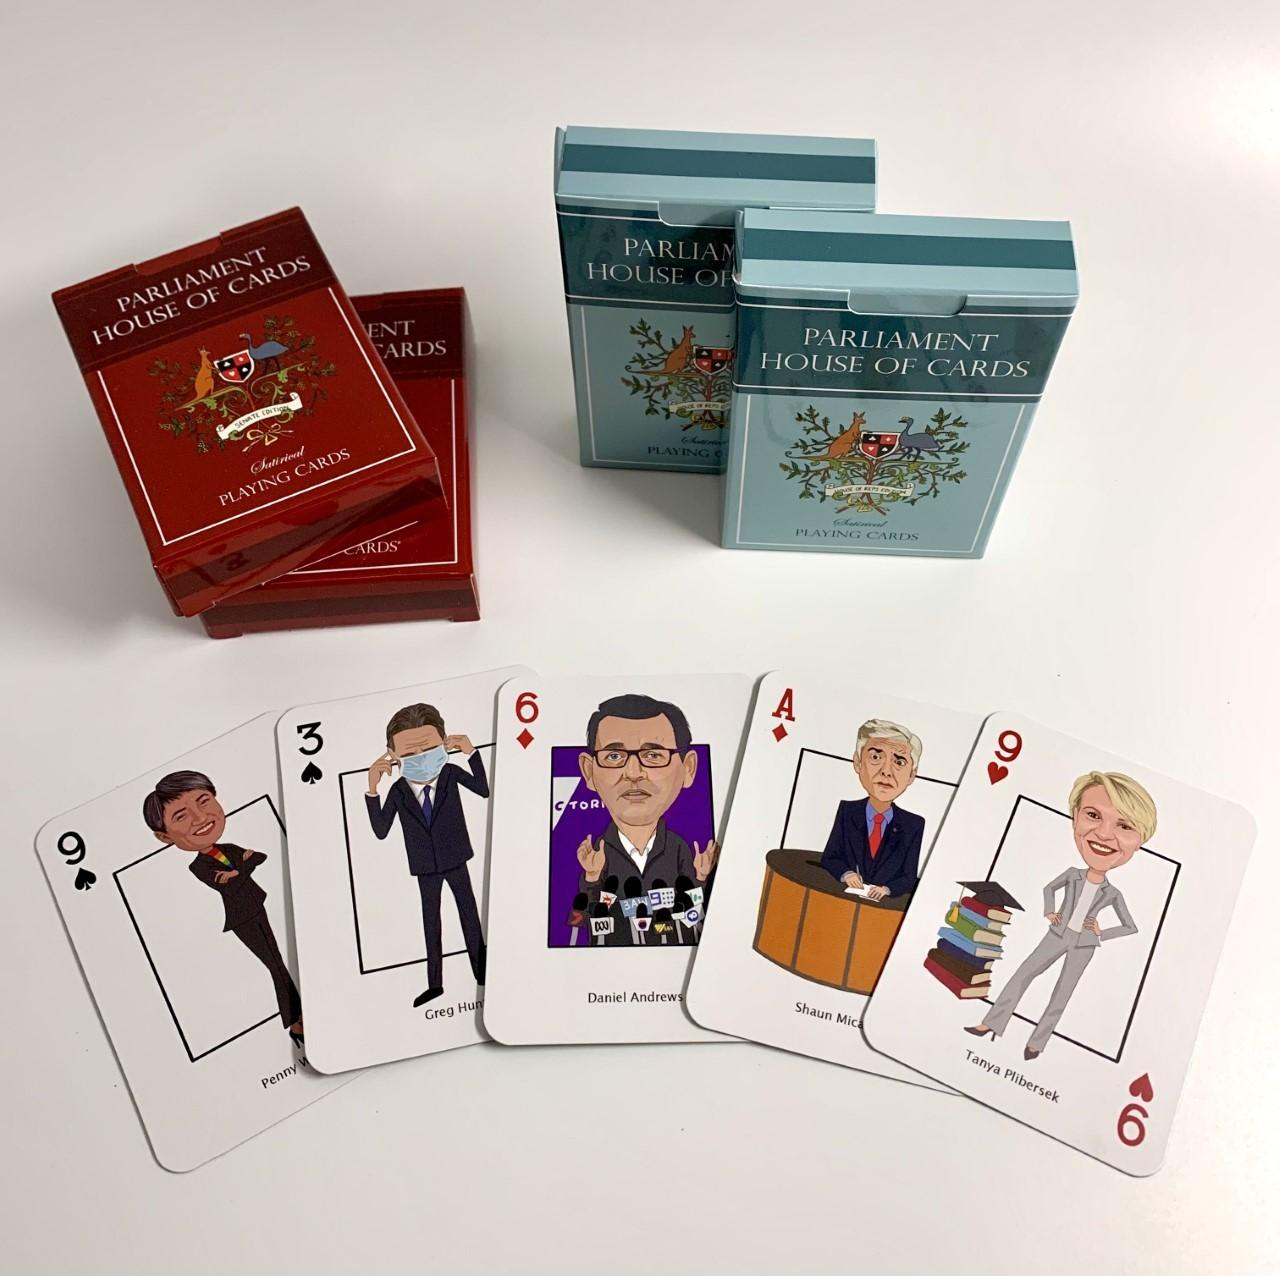 Parliament House Of Cards Playing Cards